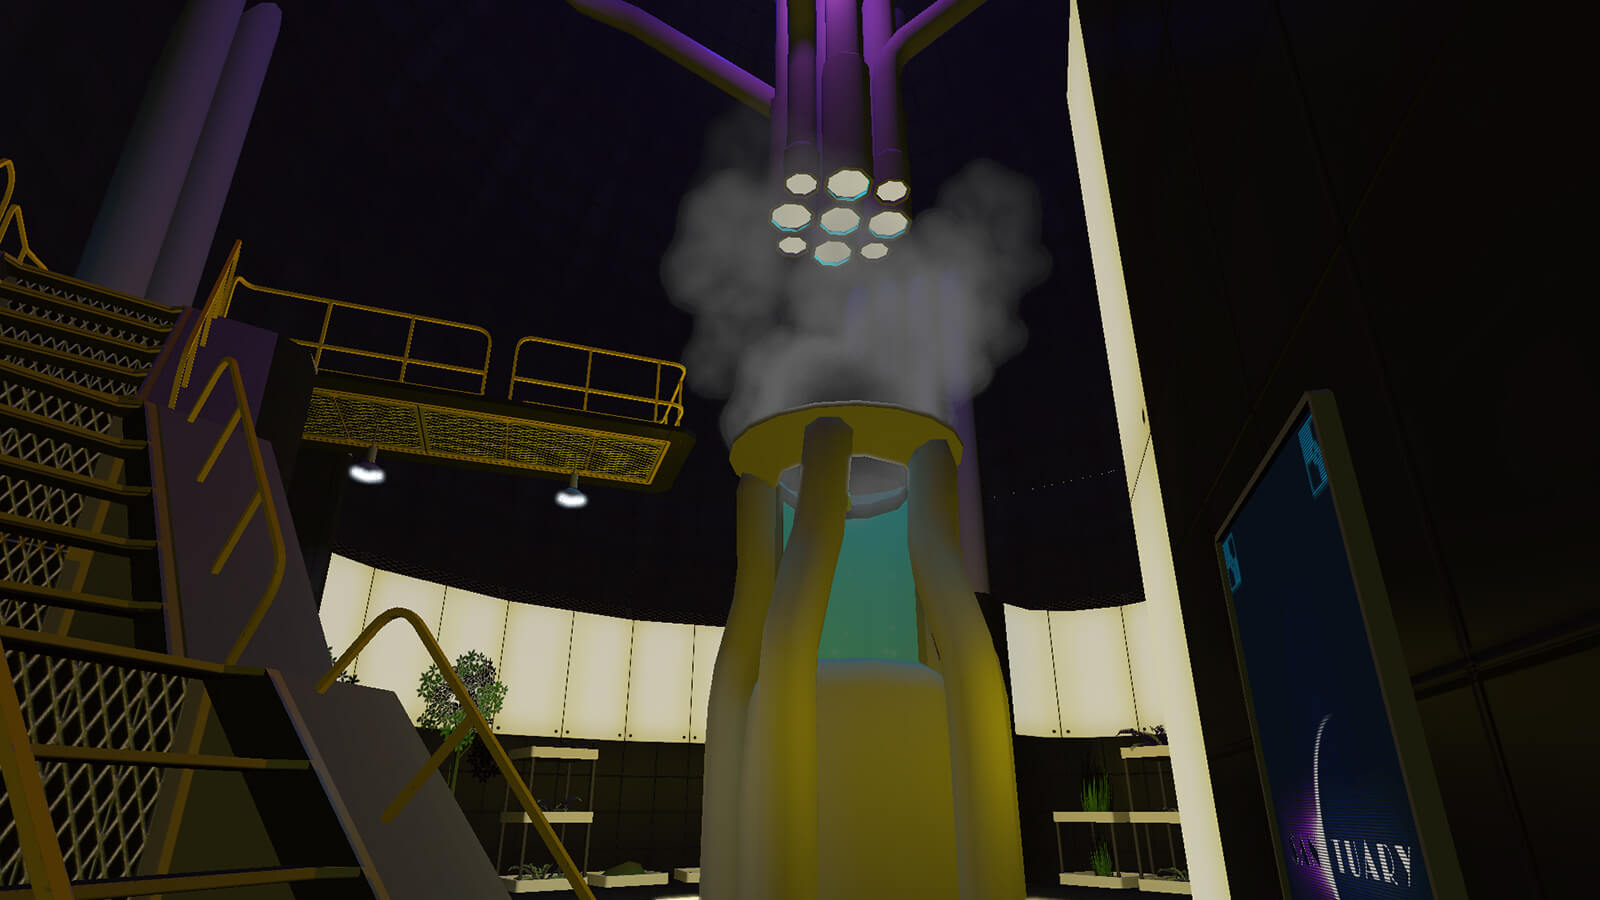 Industrial stairs lead up to a steaming, yellow-and-purple mechanism dominating the center of a cylindrical room.